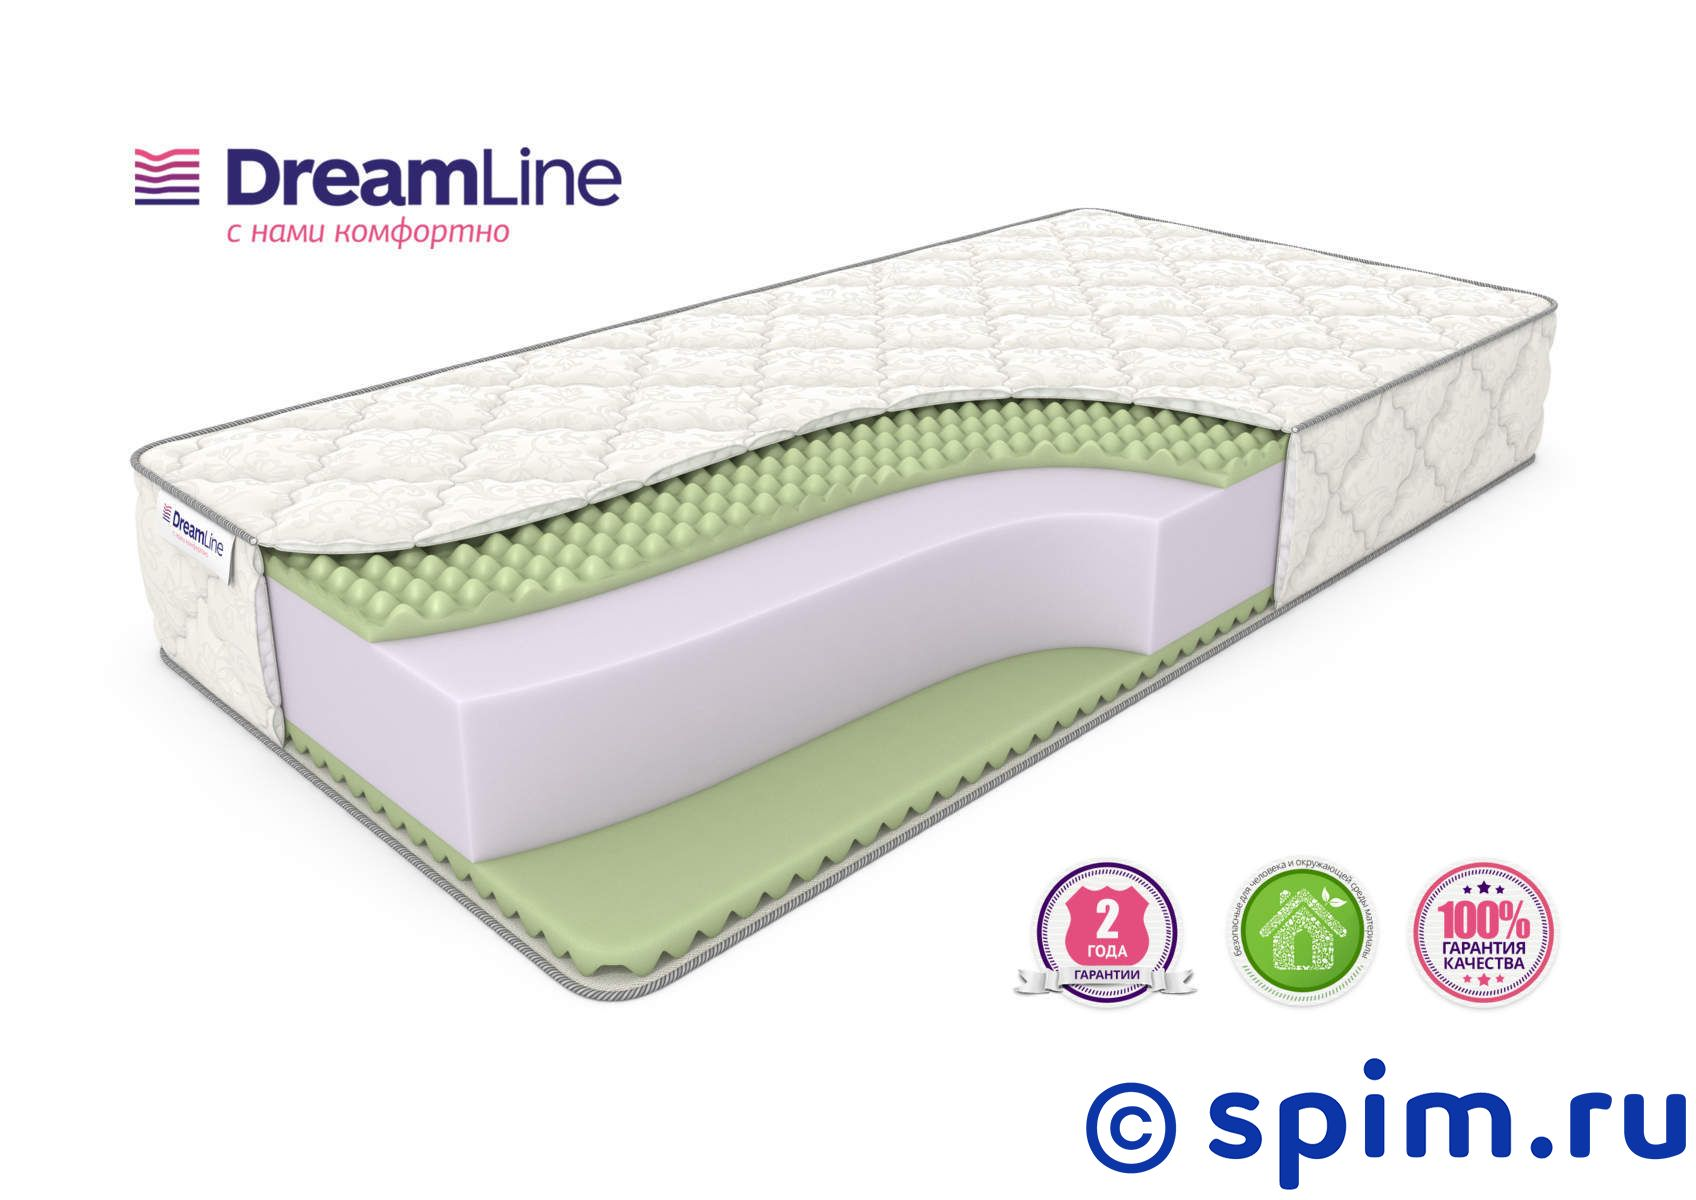 Матрас DreamLine Roll Massage Big 80х190 см